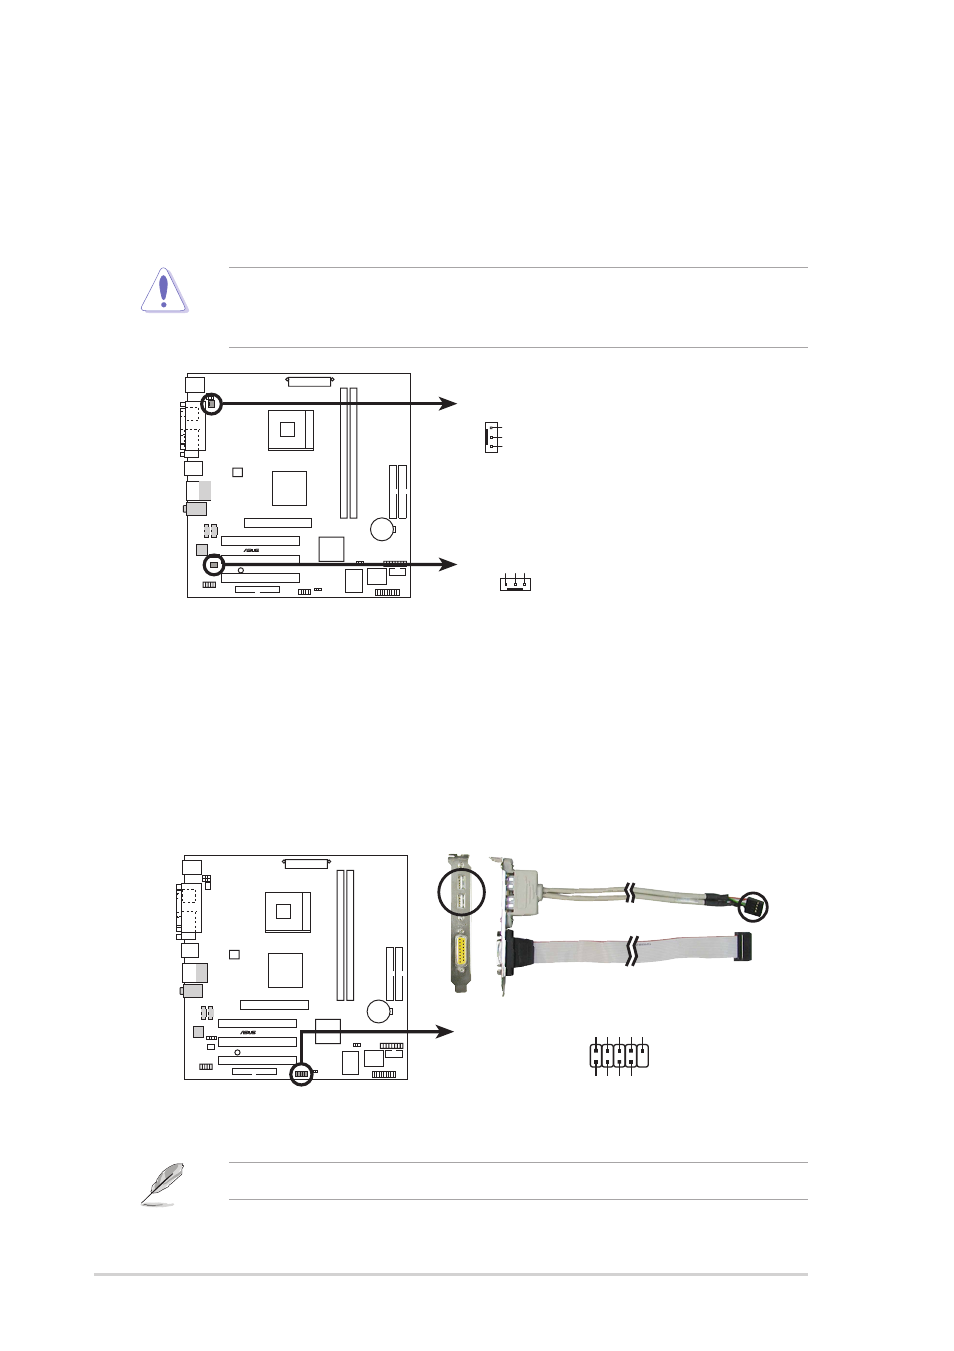 20 Chapter 1 Product Introduction P4sp Mx Se Fan Connectors Usb Motherboard Plug Wiring Diagram On 2 0 Connection Cpu Fan1 Cha Asus User Manual Page 28 64